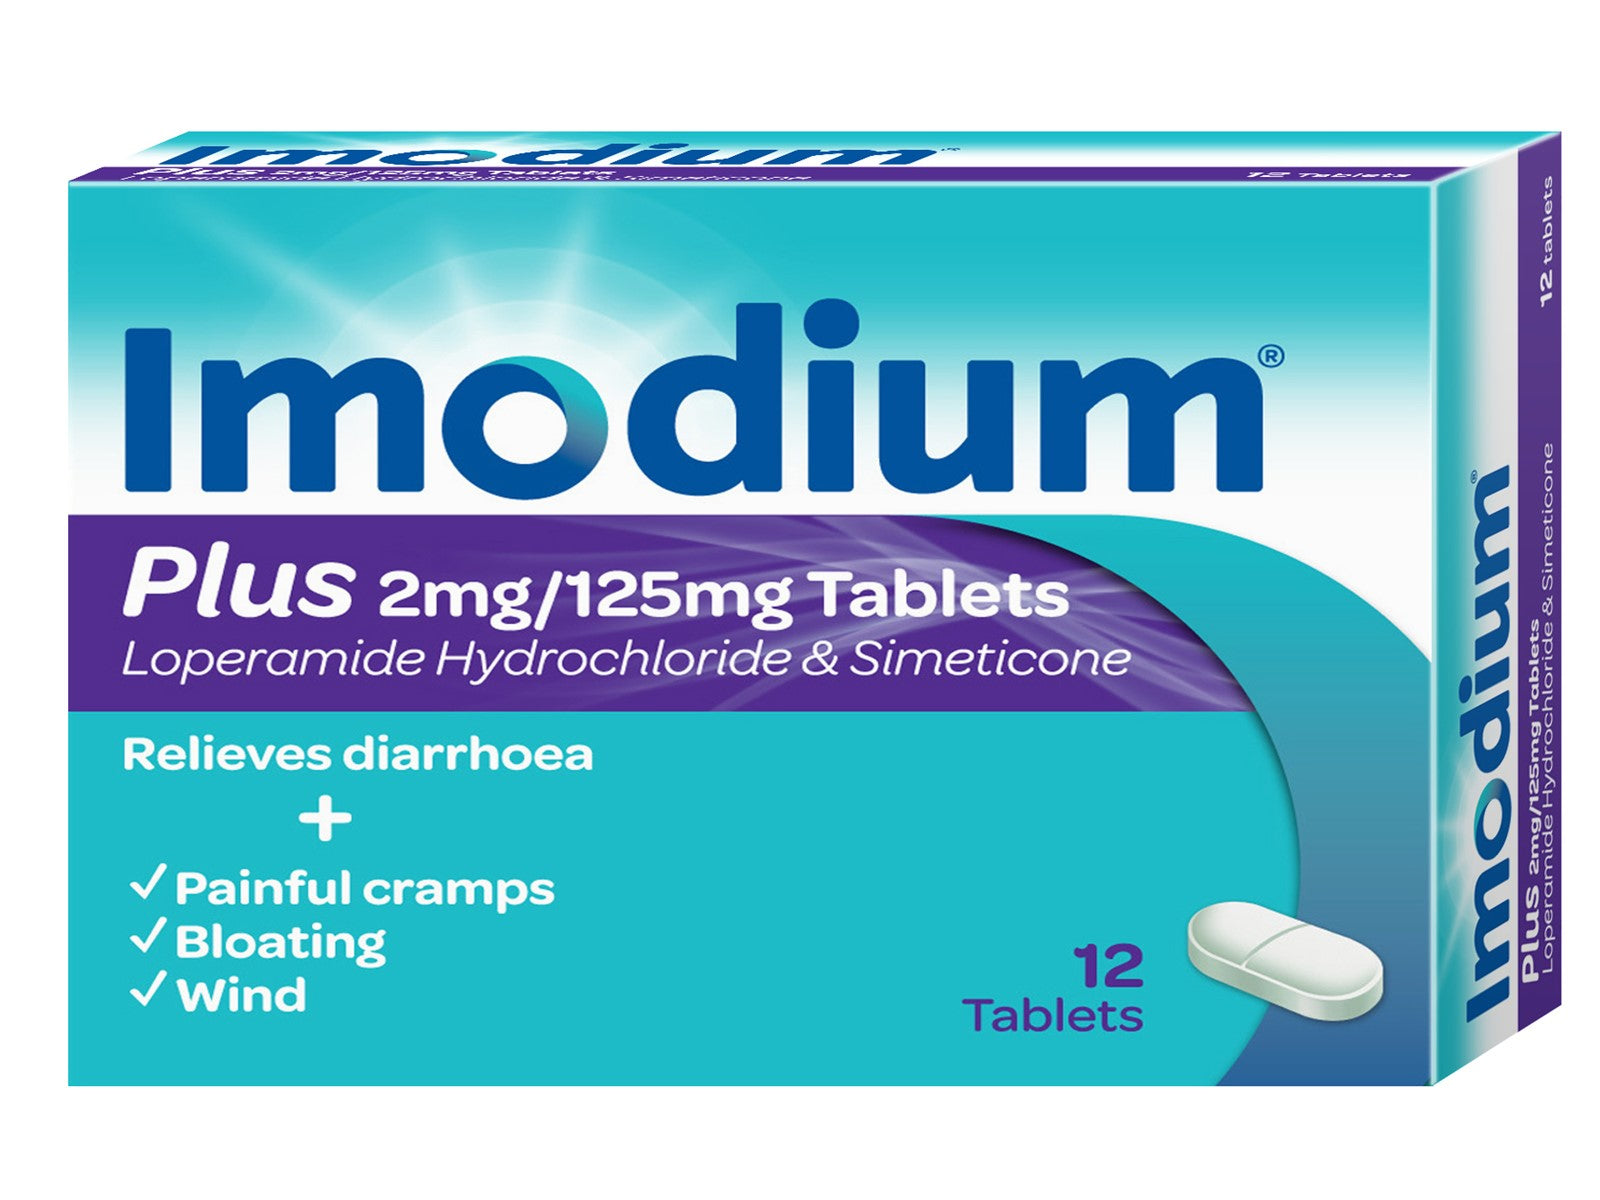 Imodium Plus Tablets 12